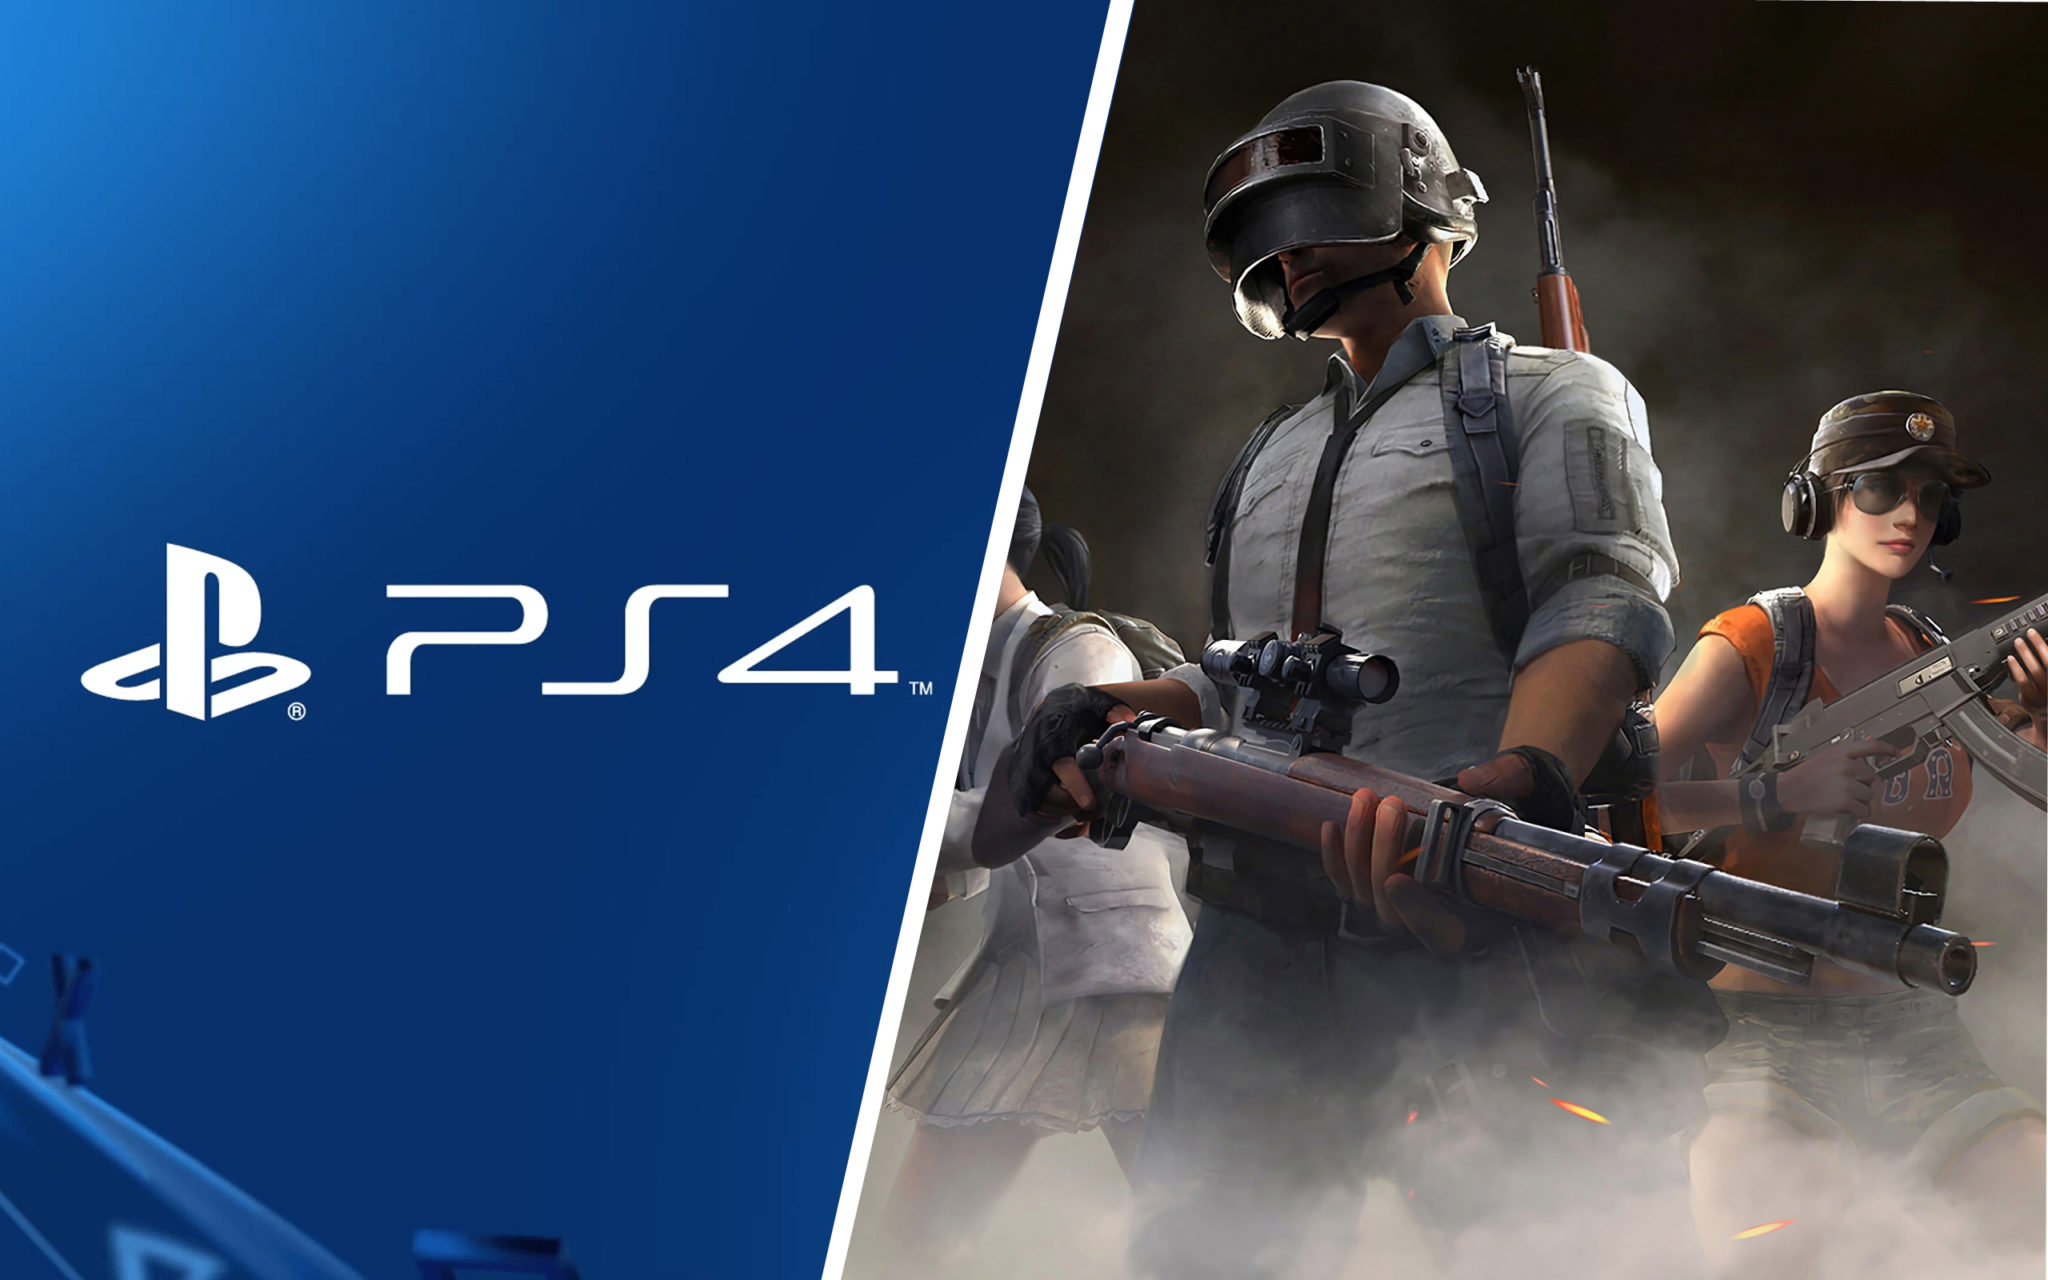 PUBG Is Coming To PS4 This December